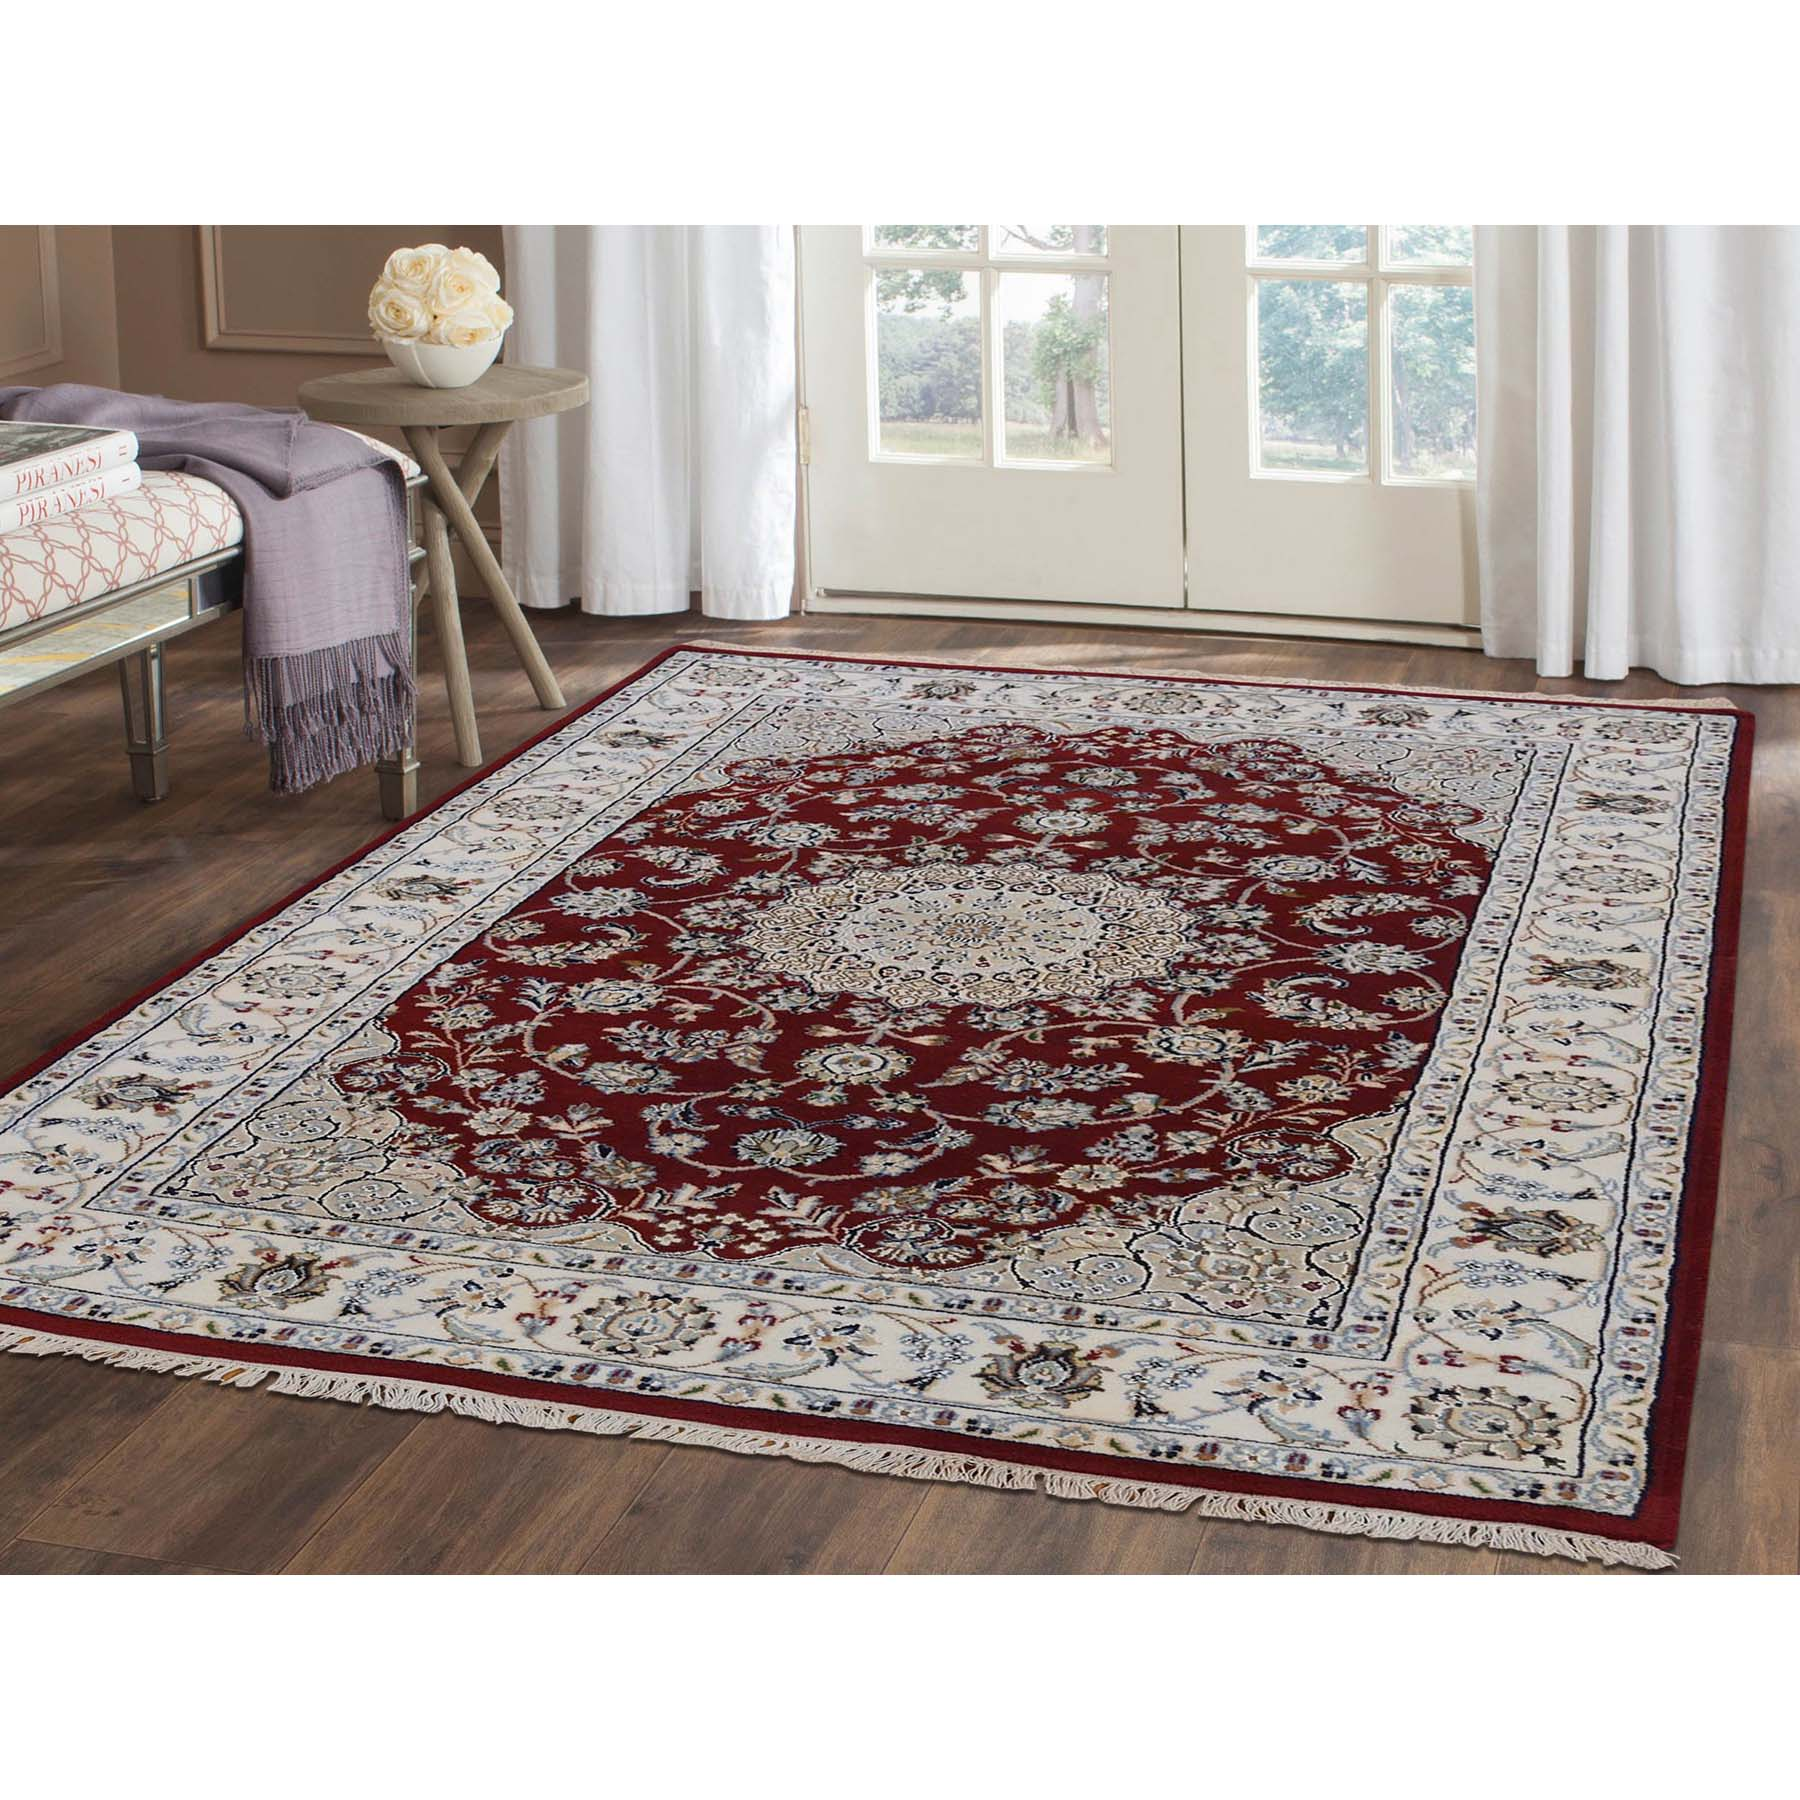 3-10 x6- 300 Kpsi Red Nain Wool and Silk Hand-Knotted Oriental Rug